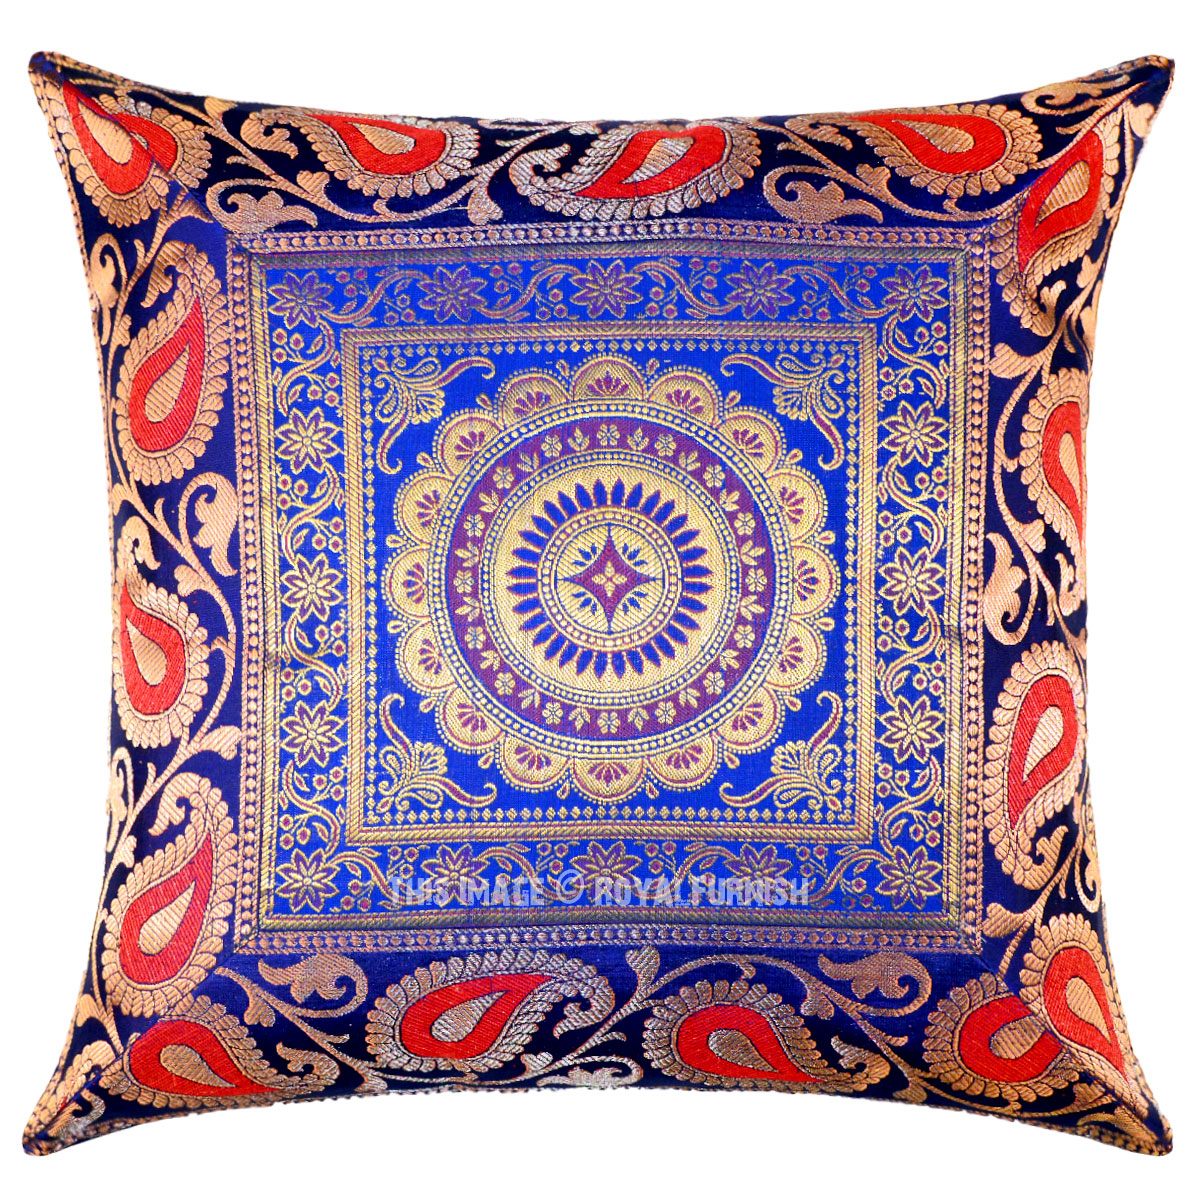 Blue Medallion Motif Decorative & Boho Accent Silk Throw Pillow Sham Cover - RoyalFurnish.com